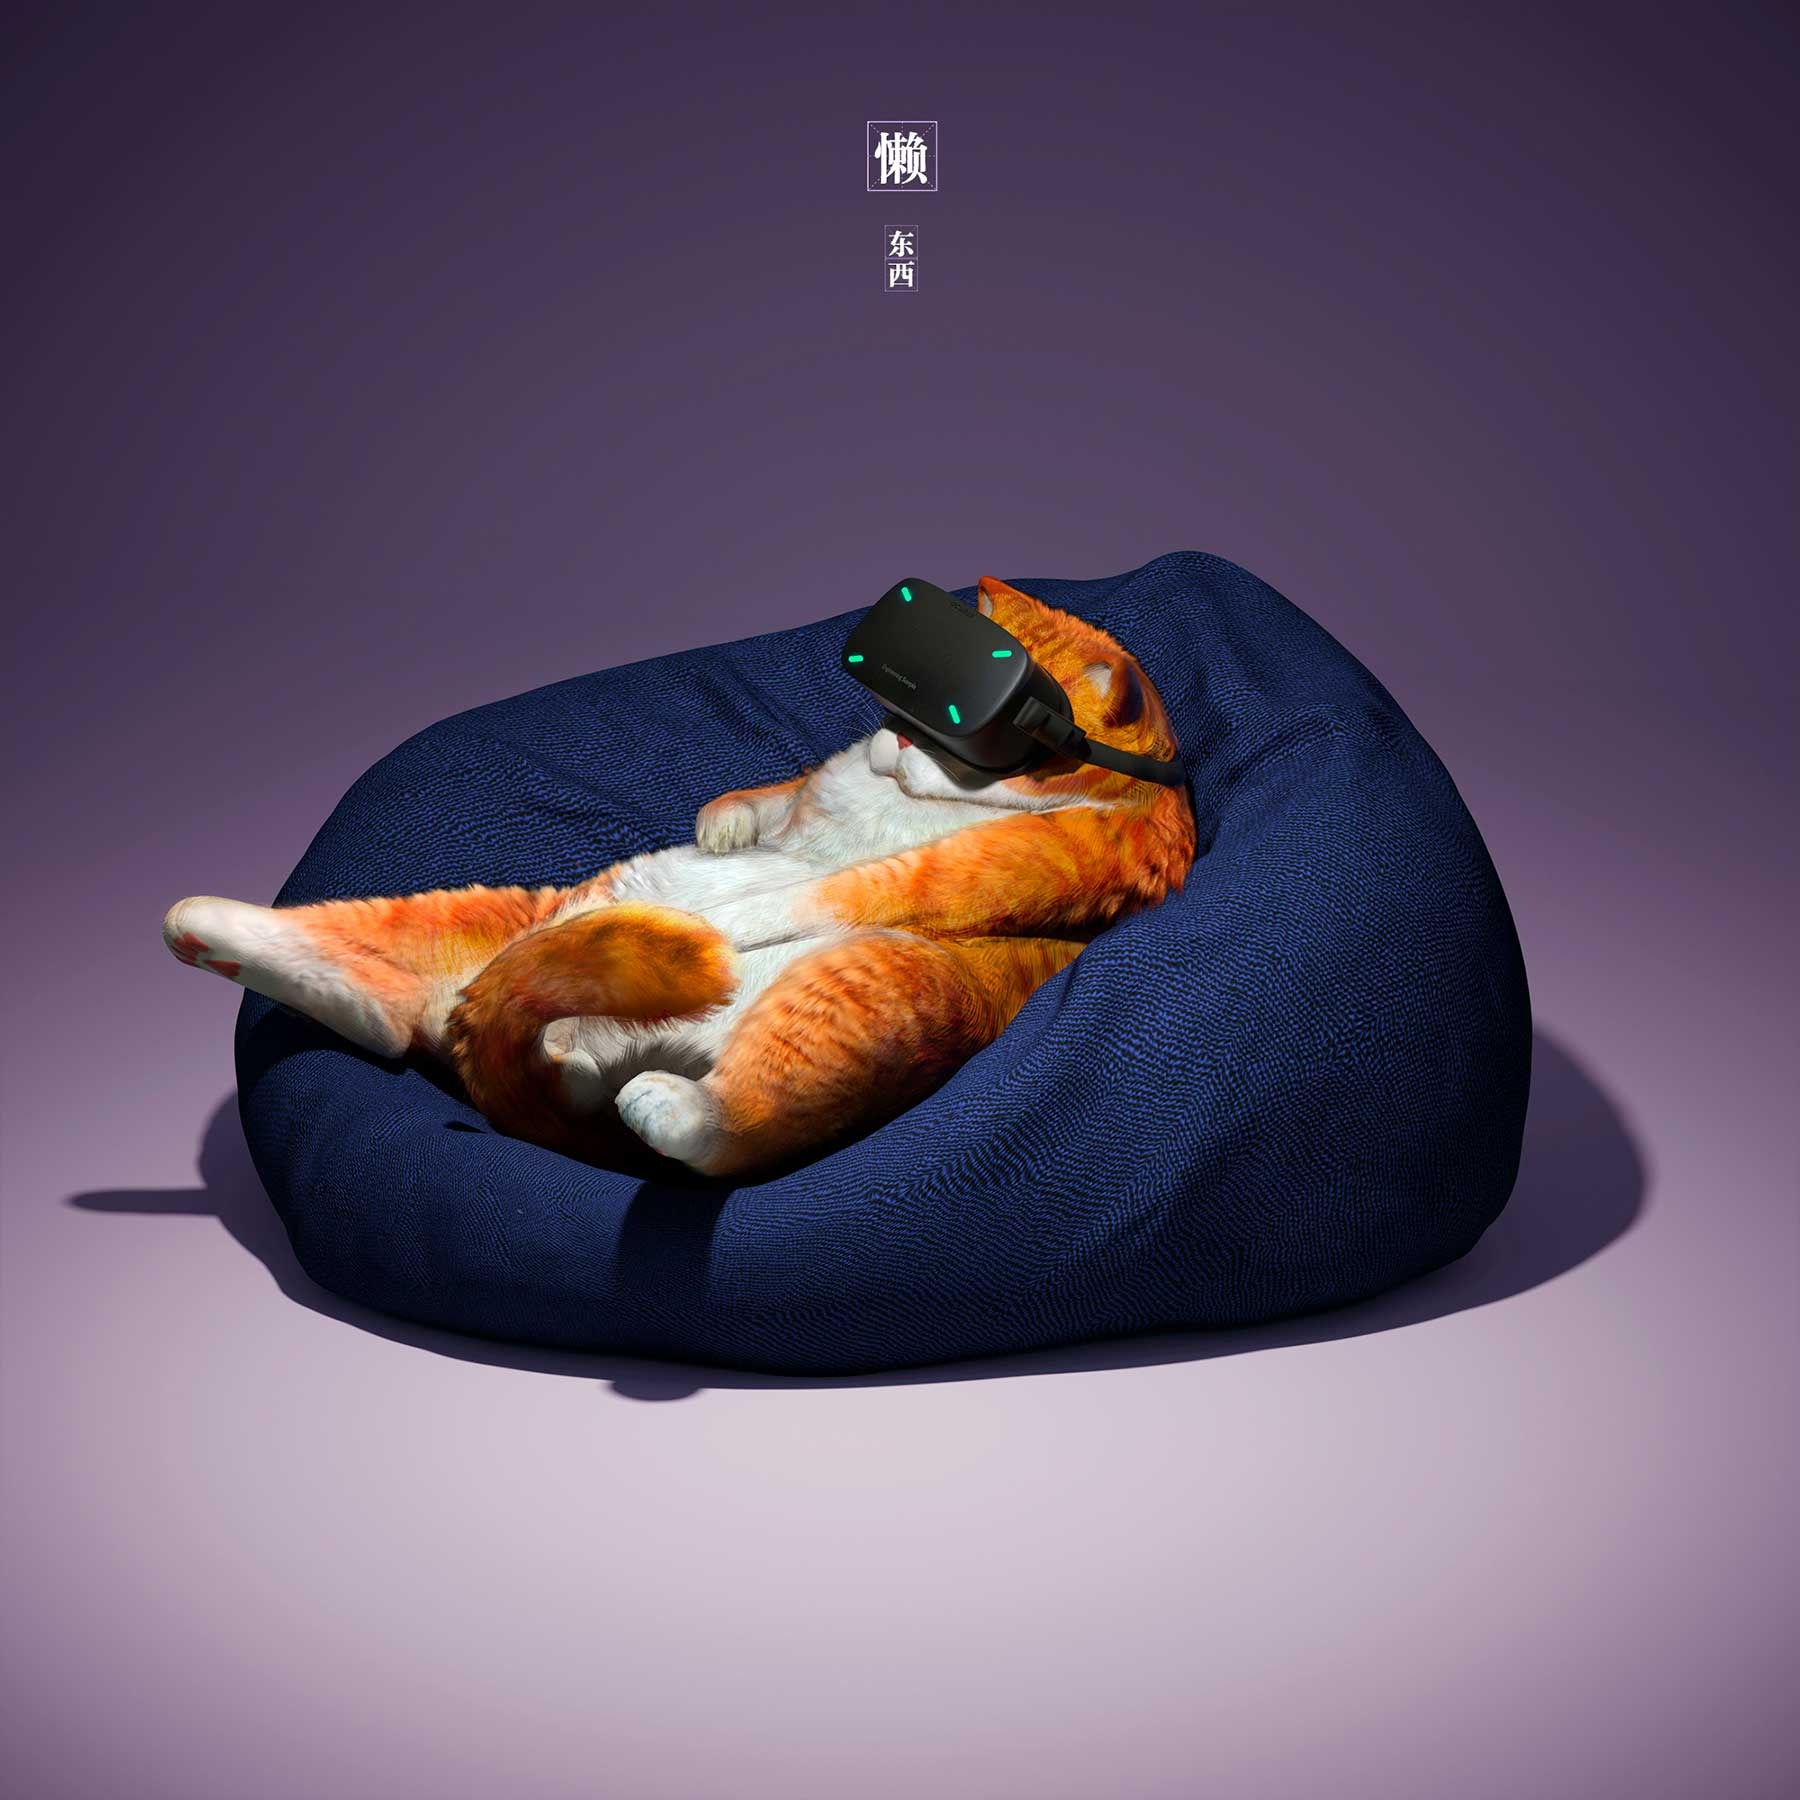 Faulenzende Tiere lazy-things-Guodong-Zhao_03